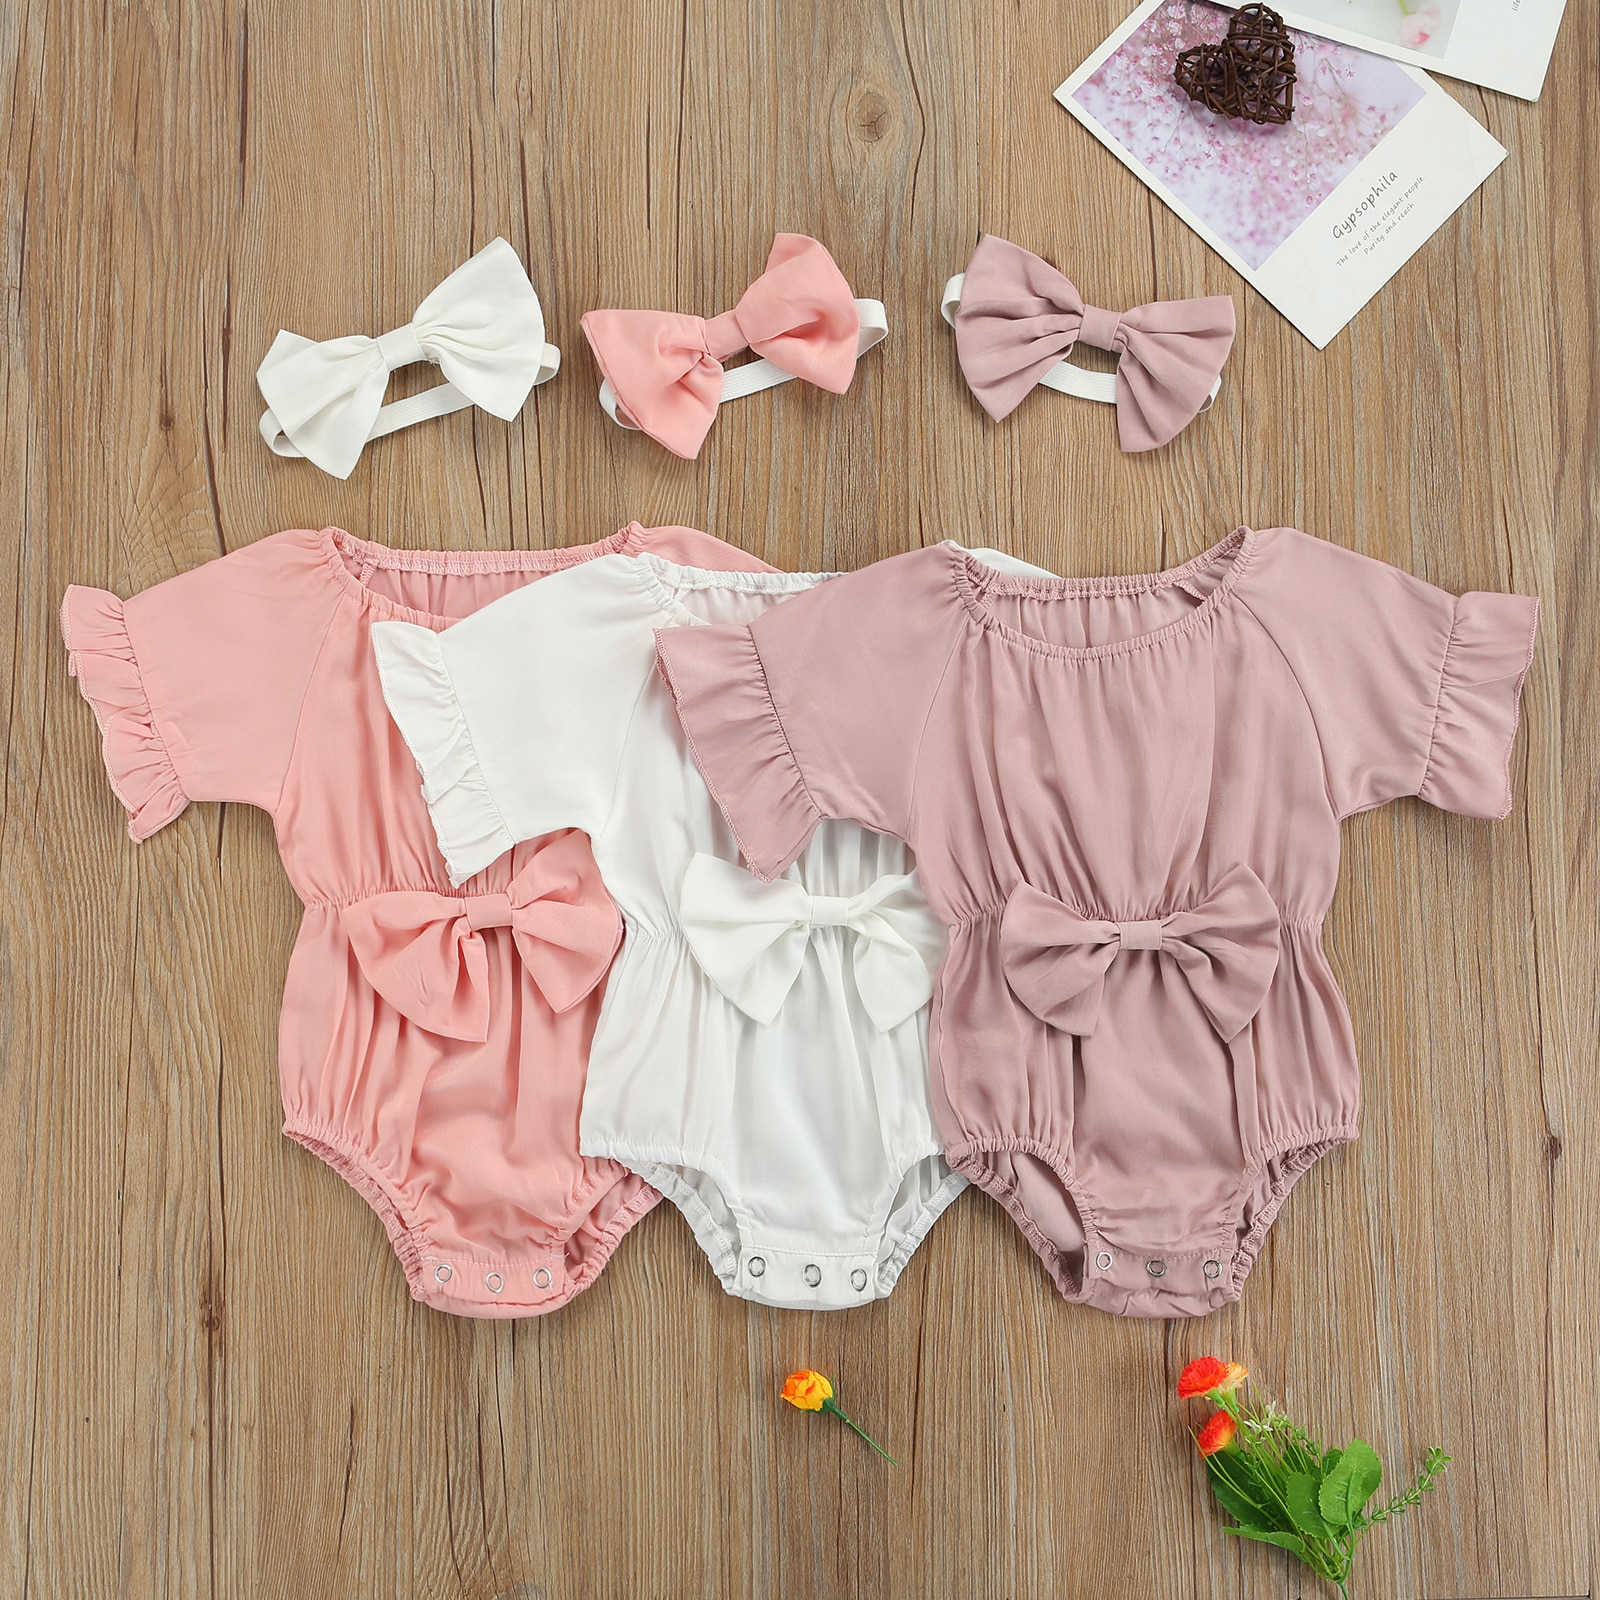 OPPERIAYA 2Pcs Newborn Summer Outfits Toddler Baby Girls Solid Color Round Neck Ruffle Sleeve Bodysuit Headband with Bowknot